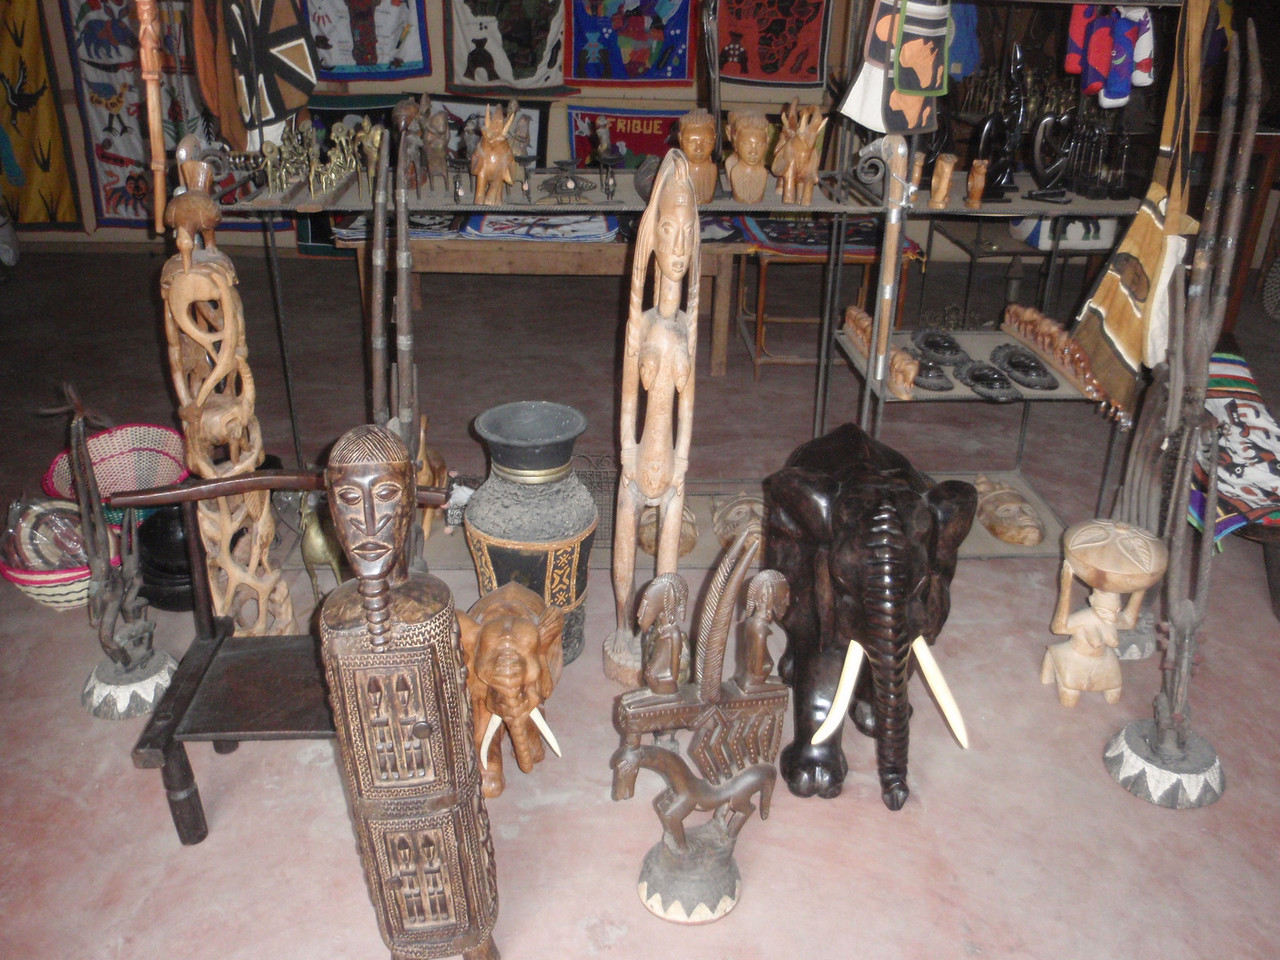 148_Cotonou  Craft Market  Woodcarvings  Various Statuettes